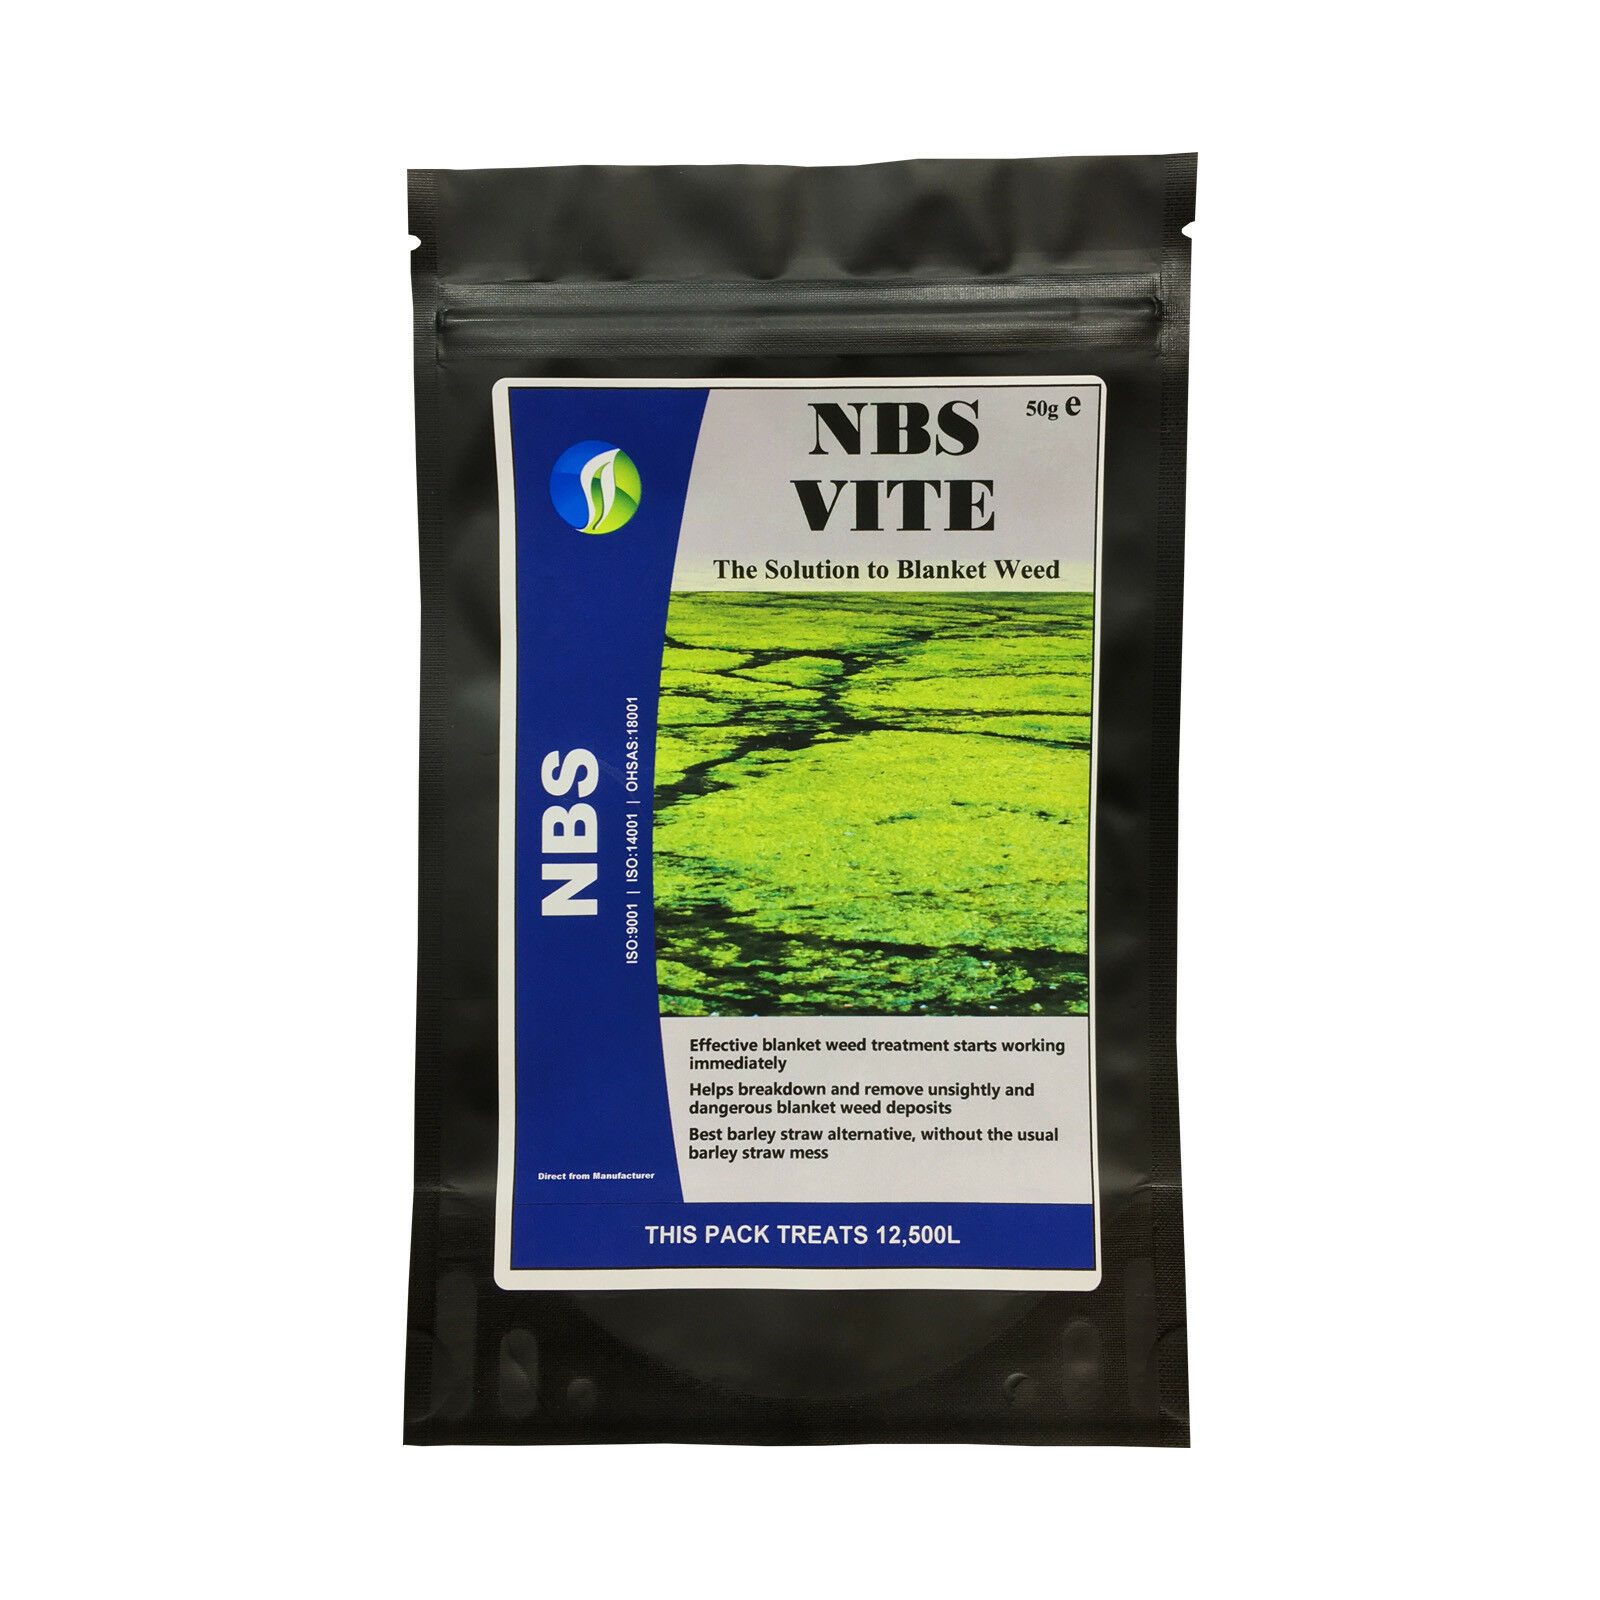 NBS VITE Clear Fish Pond Green Algae Blanket Weed 1 PACK Treats Up to 12,500 Ltr